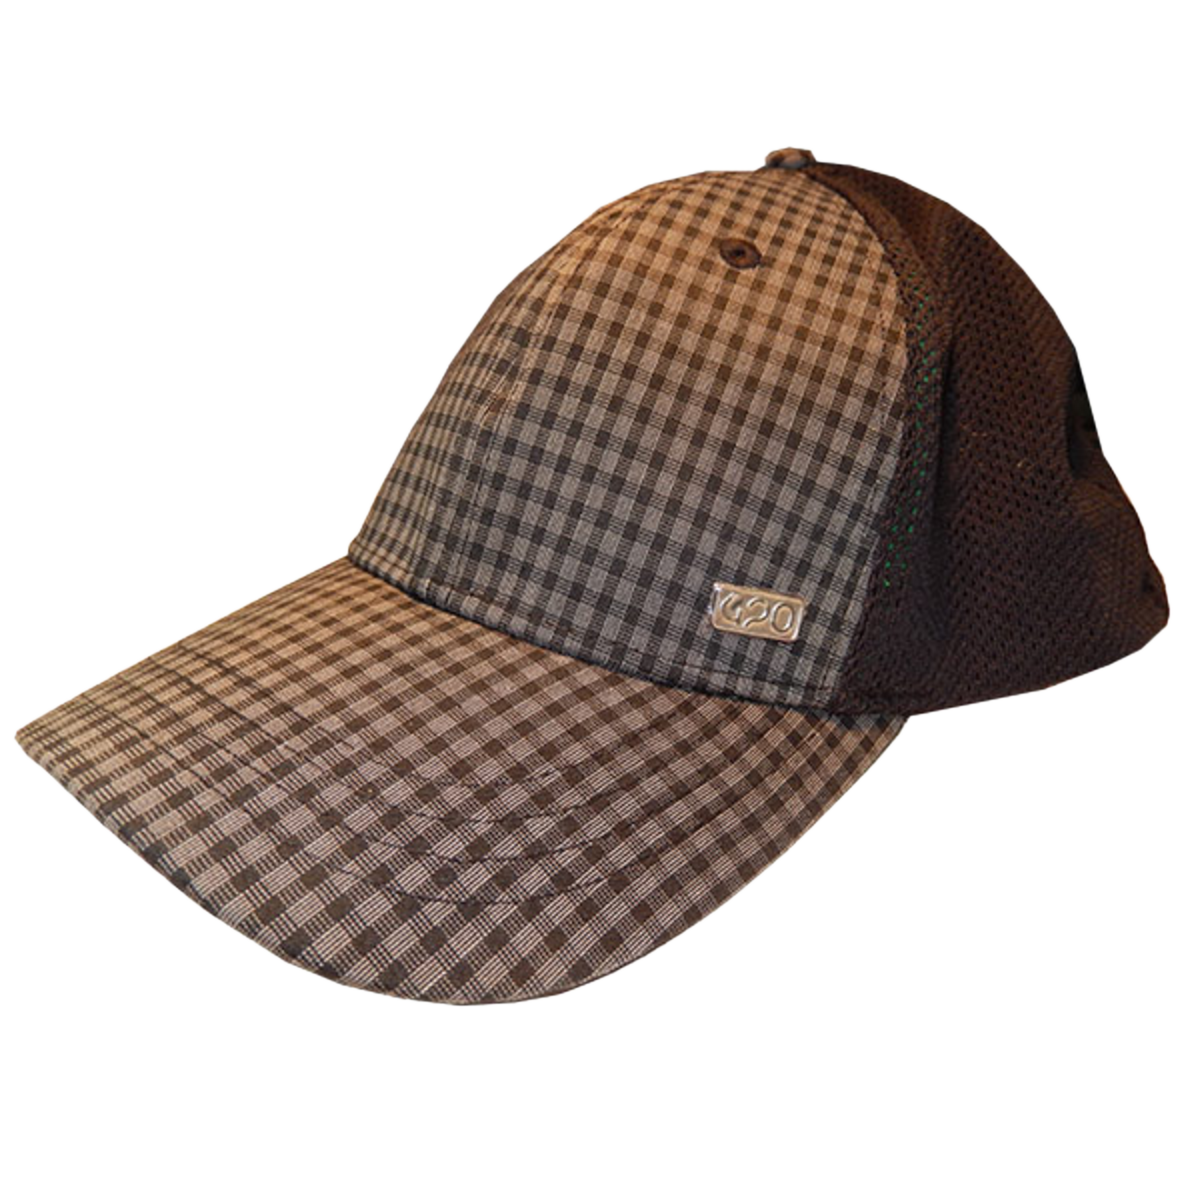 Black Plaid 420 Flex Fit Unisex Adjustable Cap with Pocket and Zipper